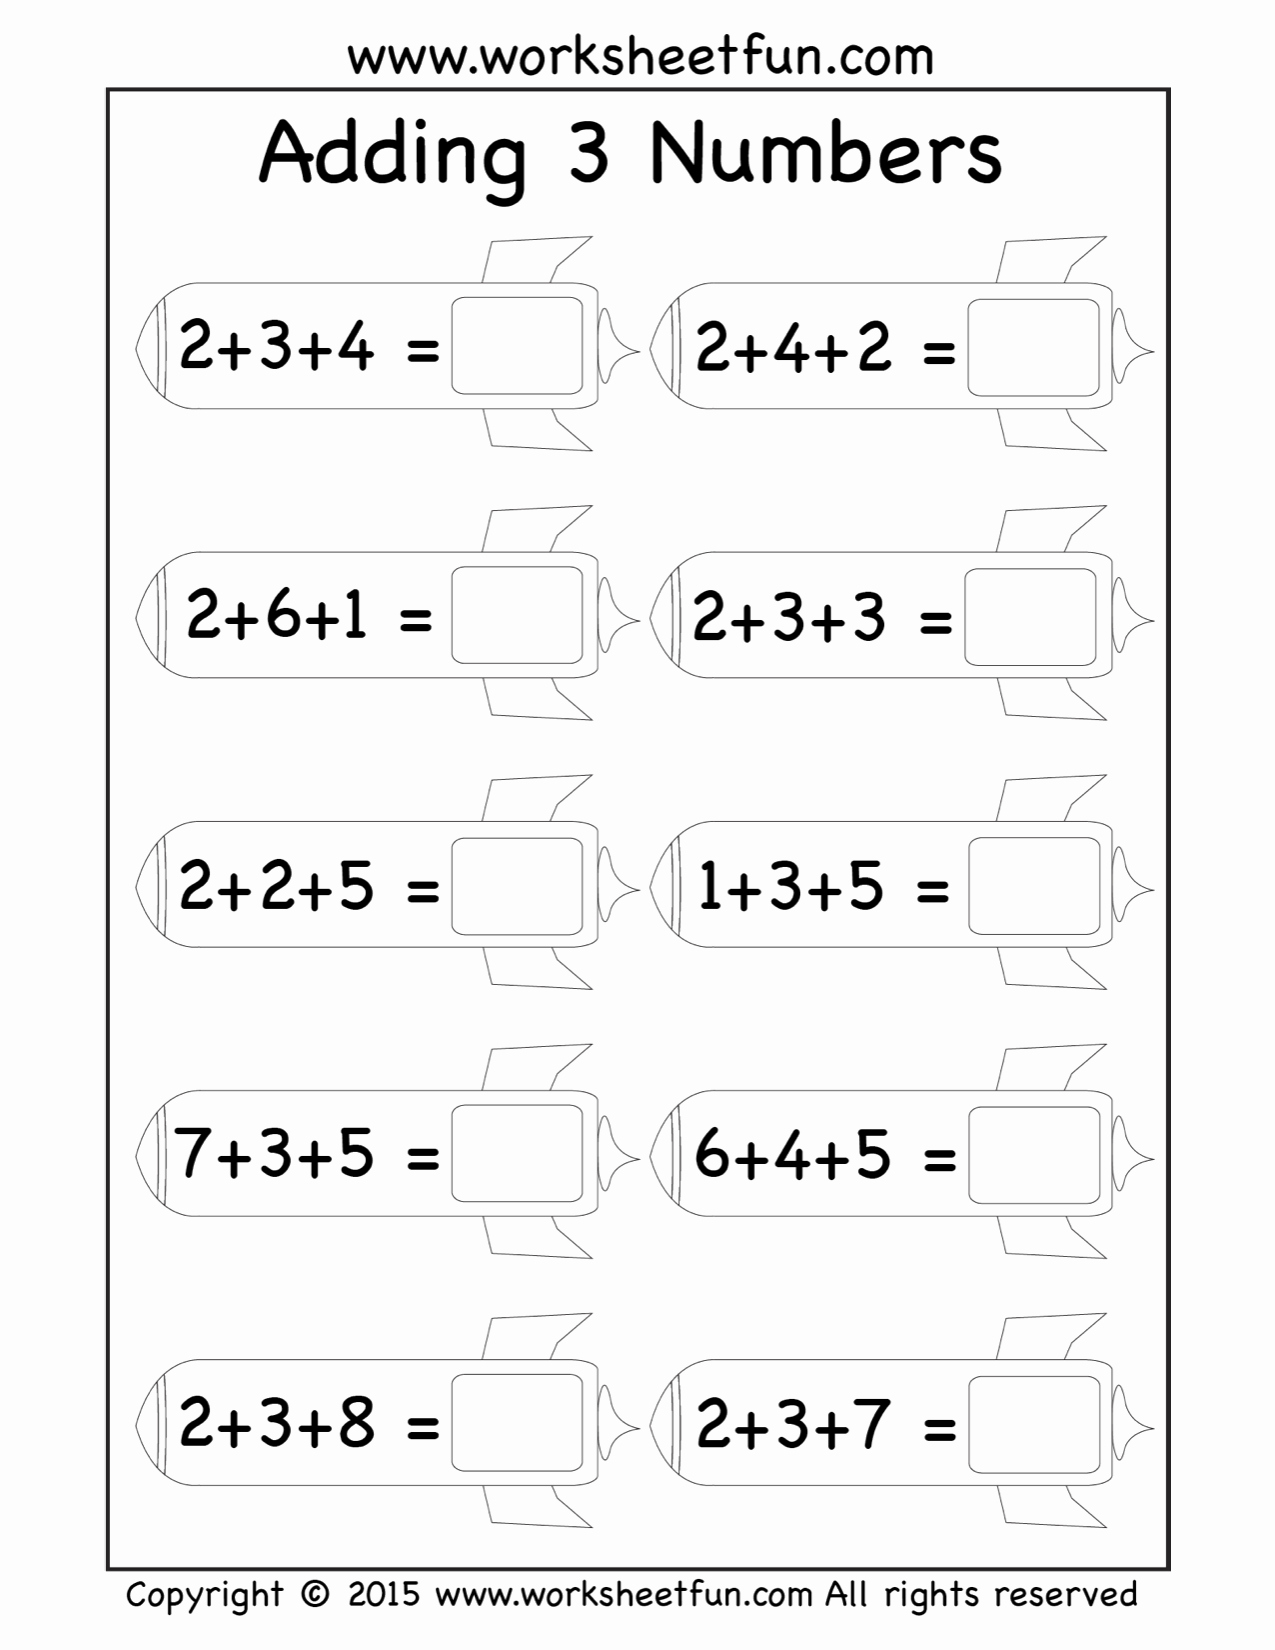 Adding Three Numbers Worksheet Elegant Free Three Addend Worksheets Adding 3 Numbers Rockets